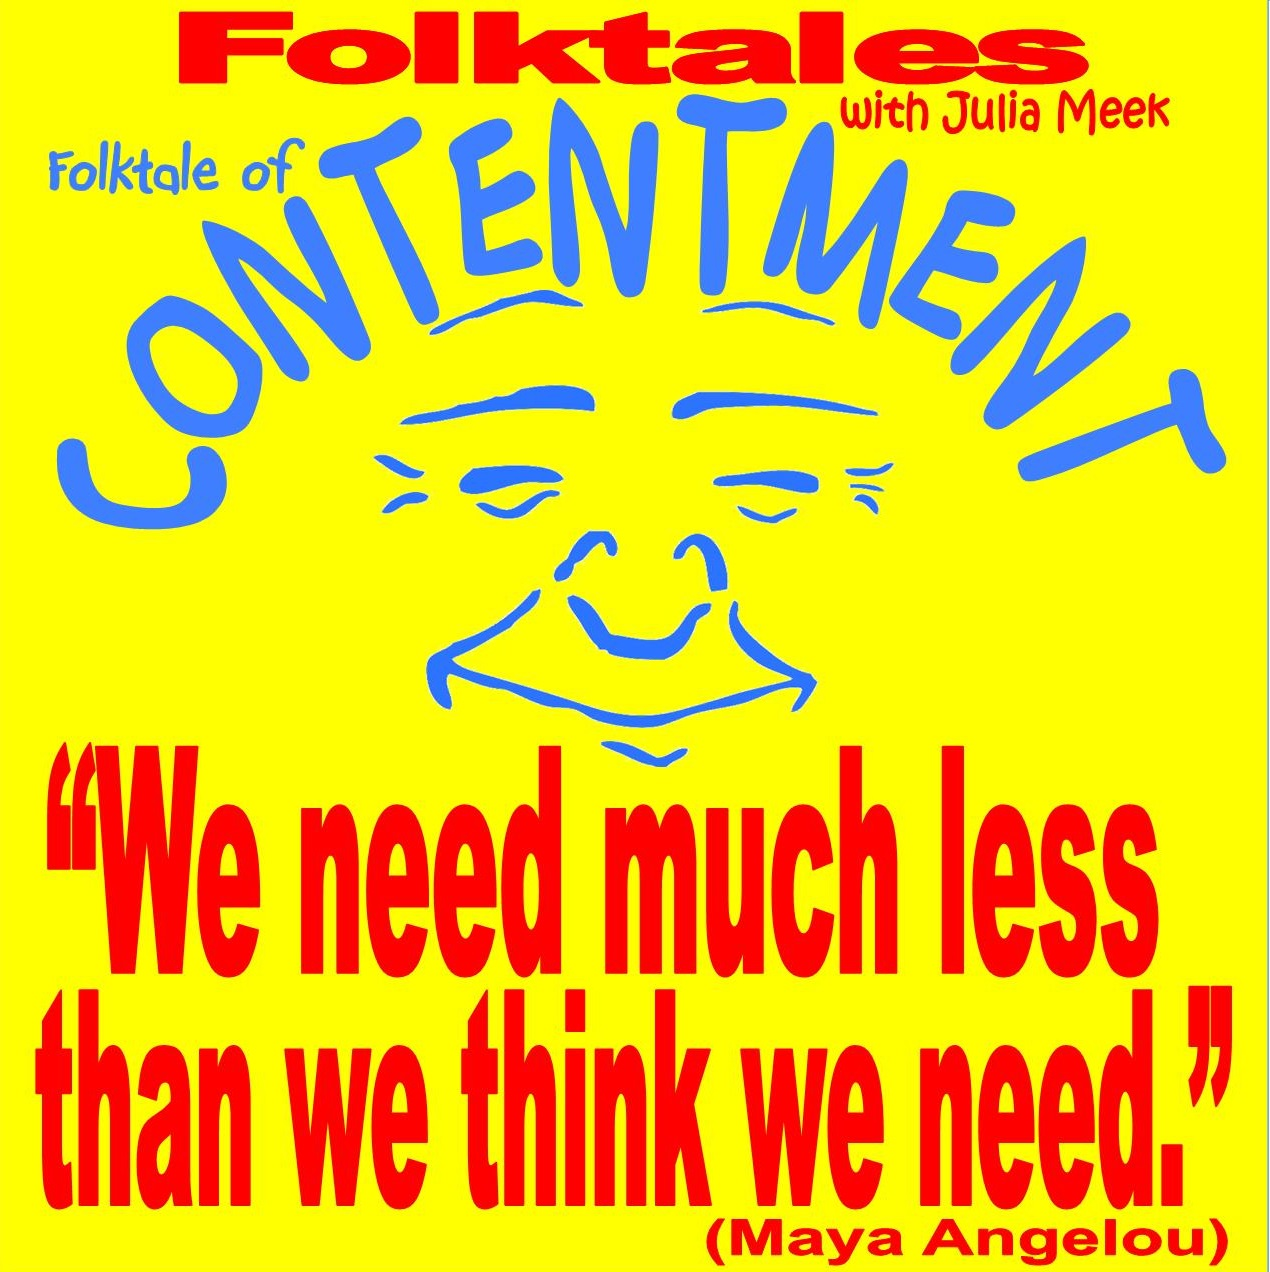 Ft_weekly-prx___fb_contentment_verse_small